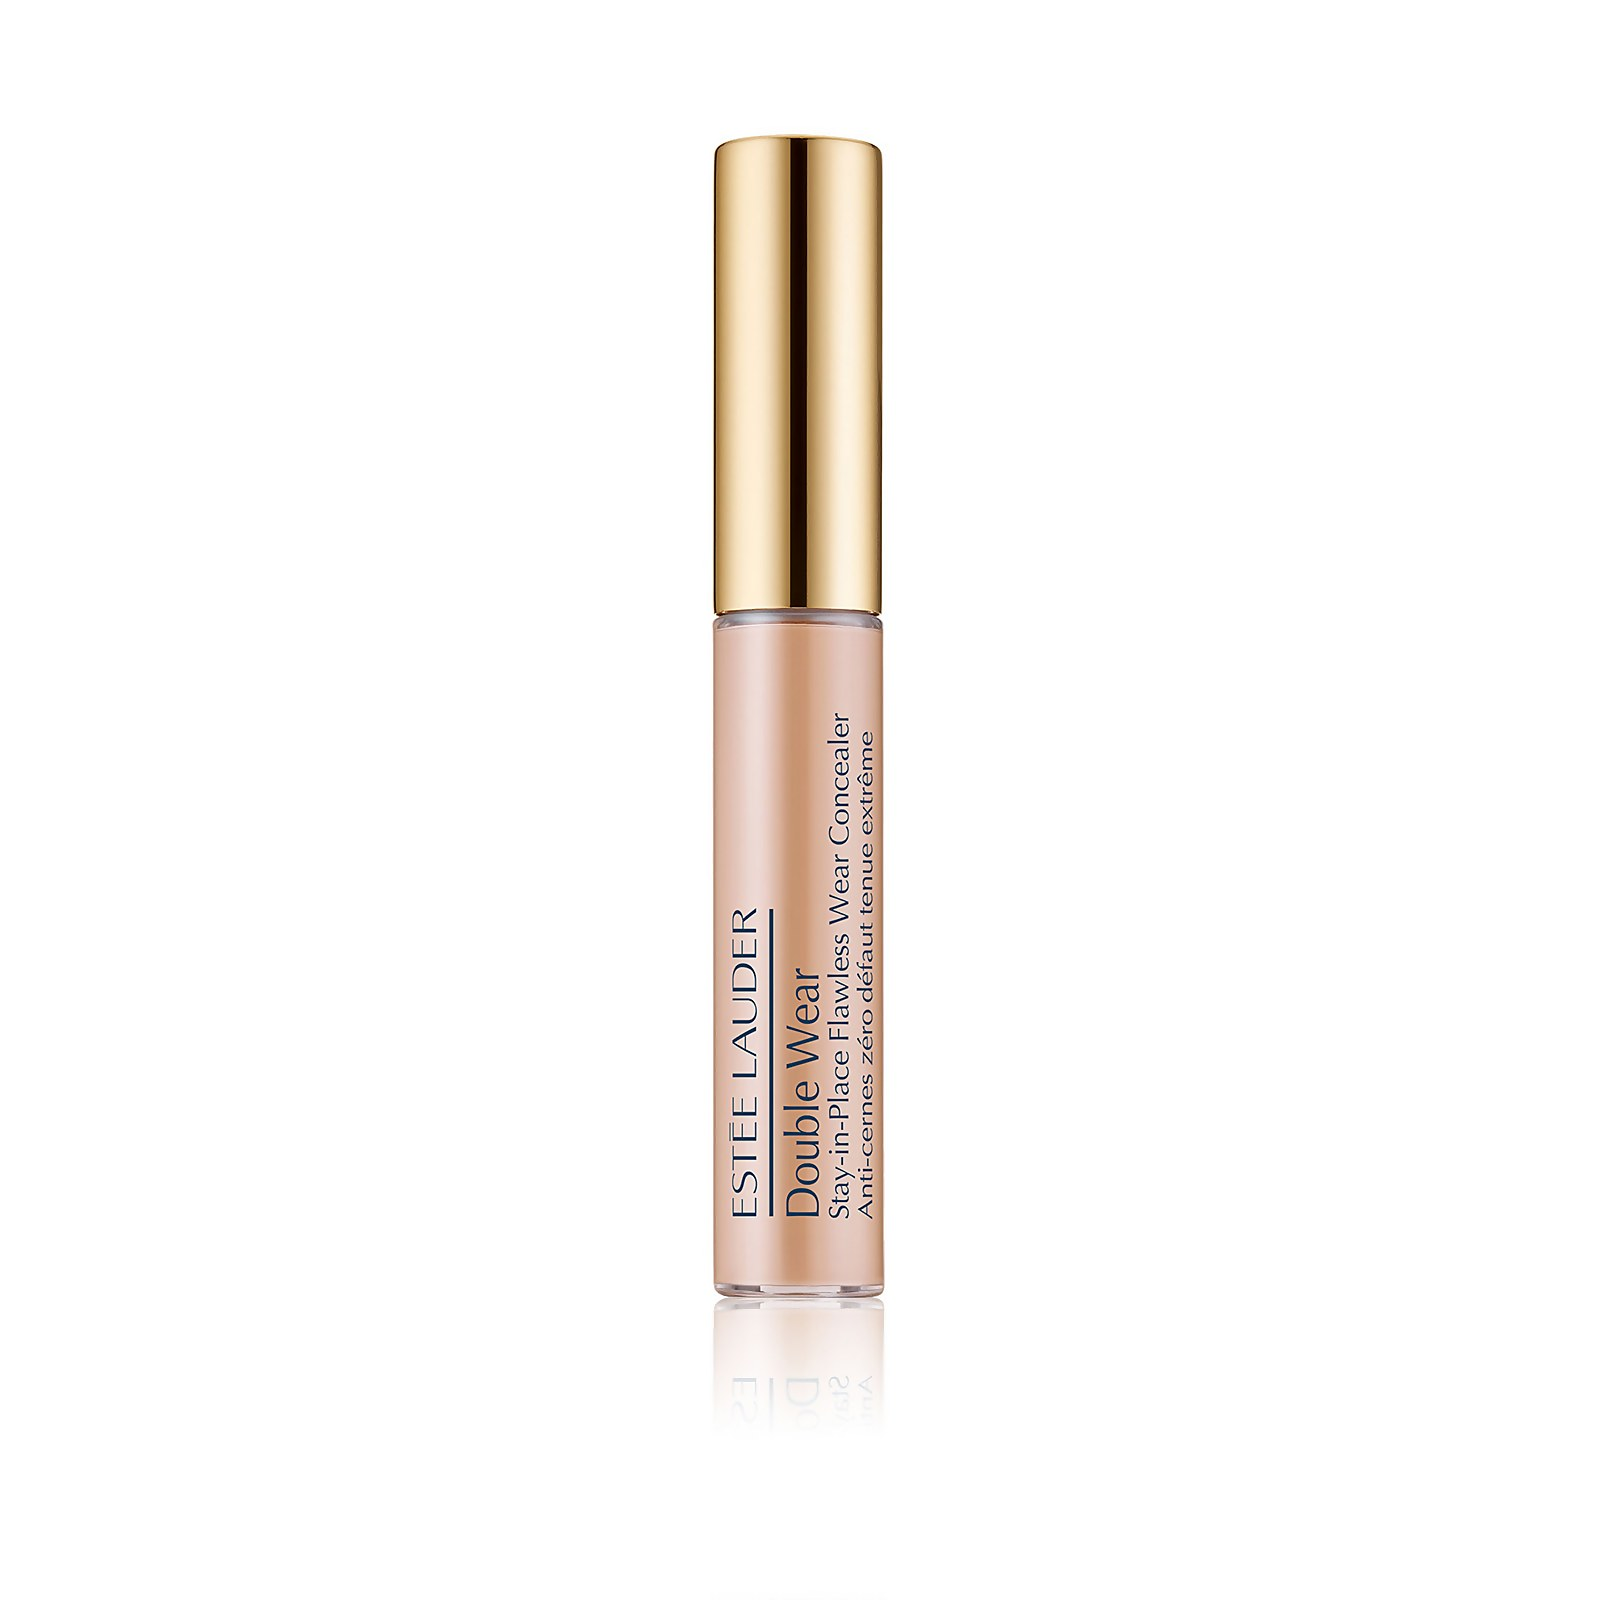 Estée Lauder Double Wear Stay-in-Place Flawless Wear Concealer 7ml (Various Shades) - 1C Light